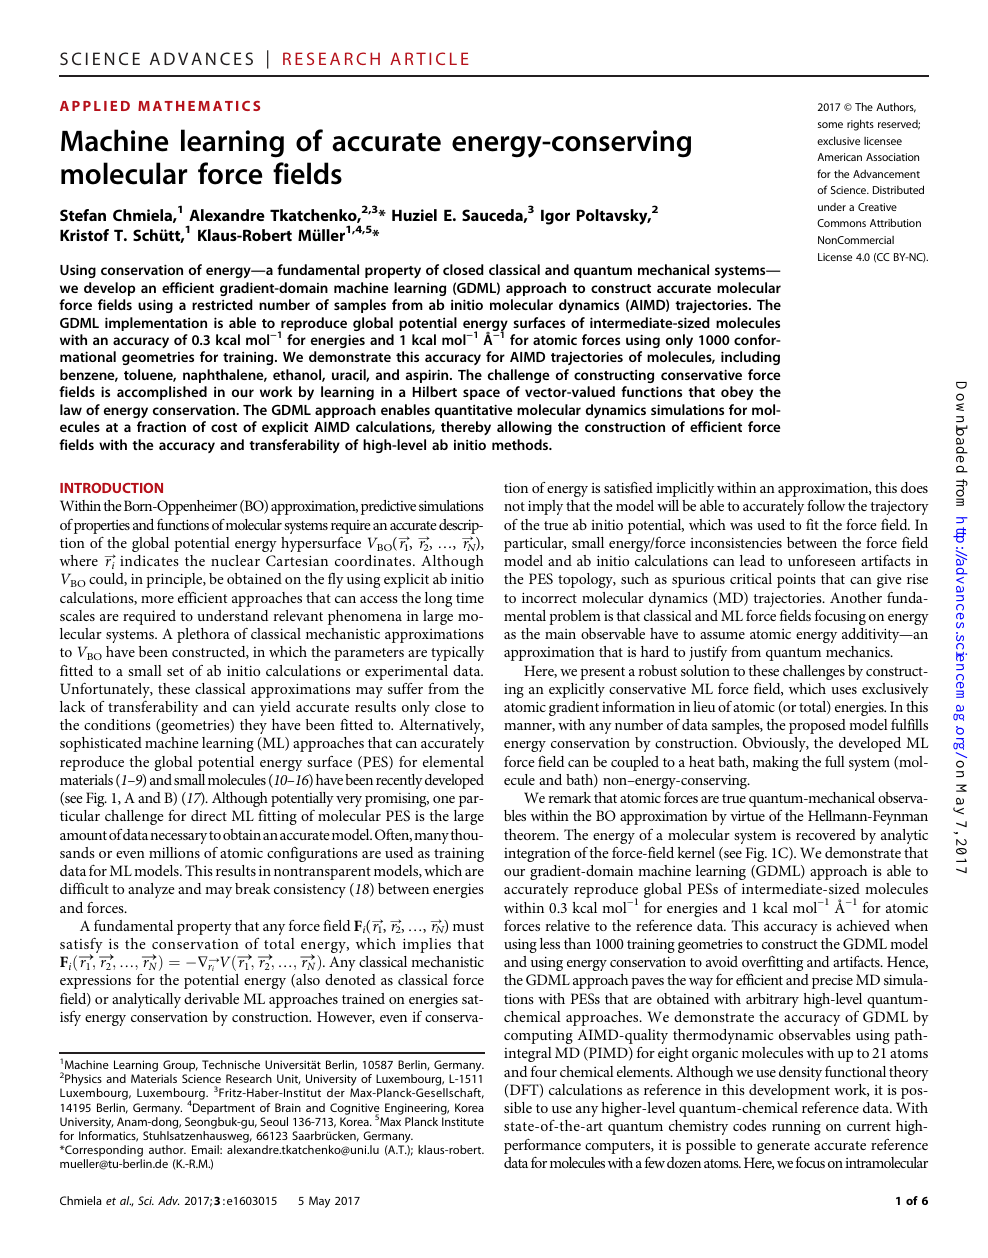 Machine learning of accurate energy-conserving molecular